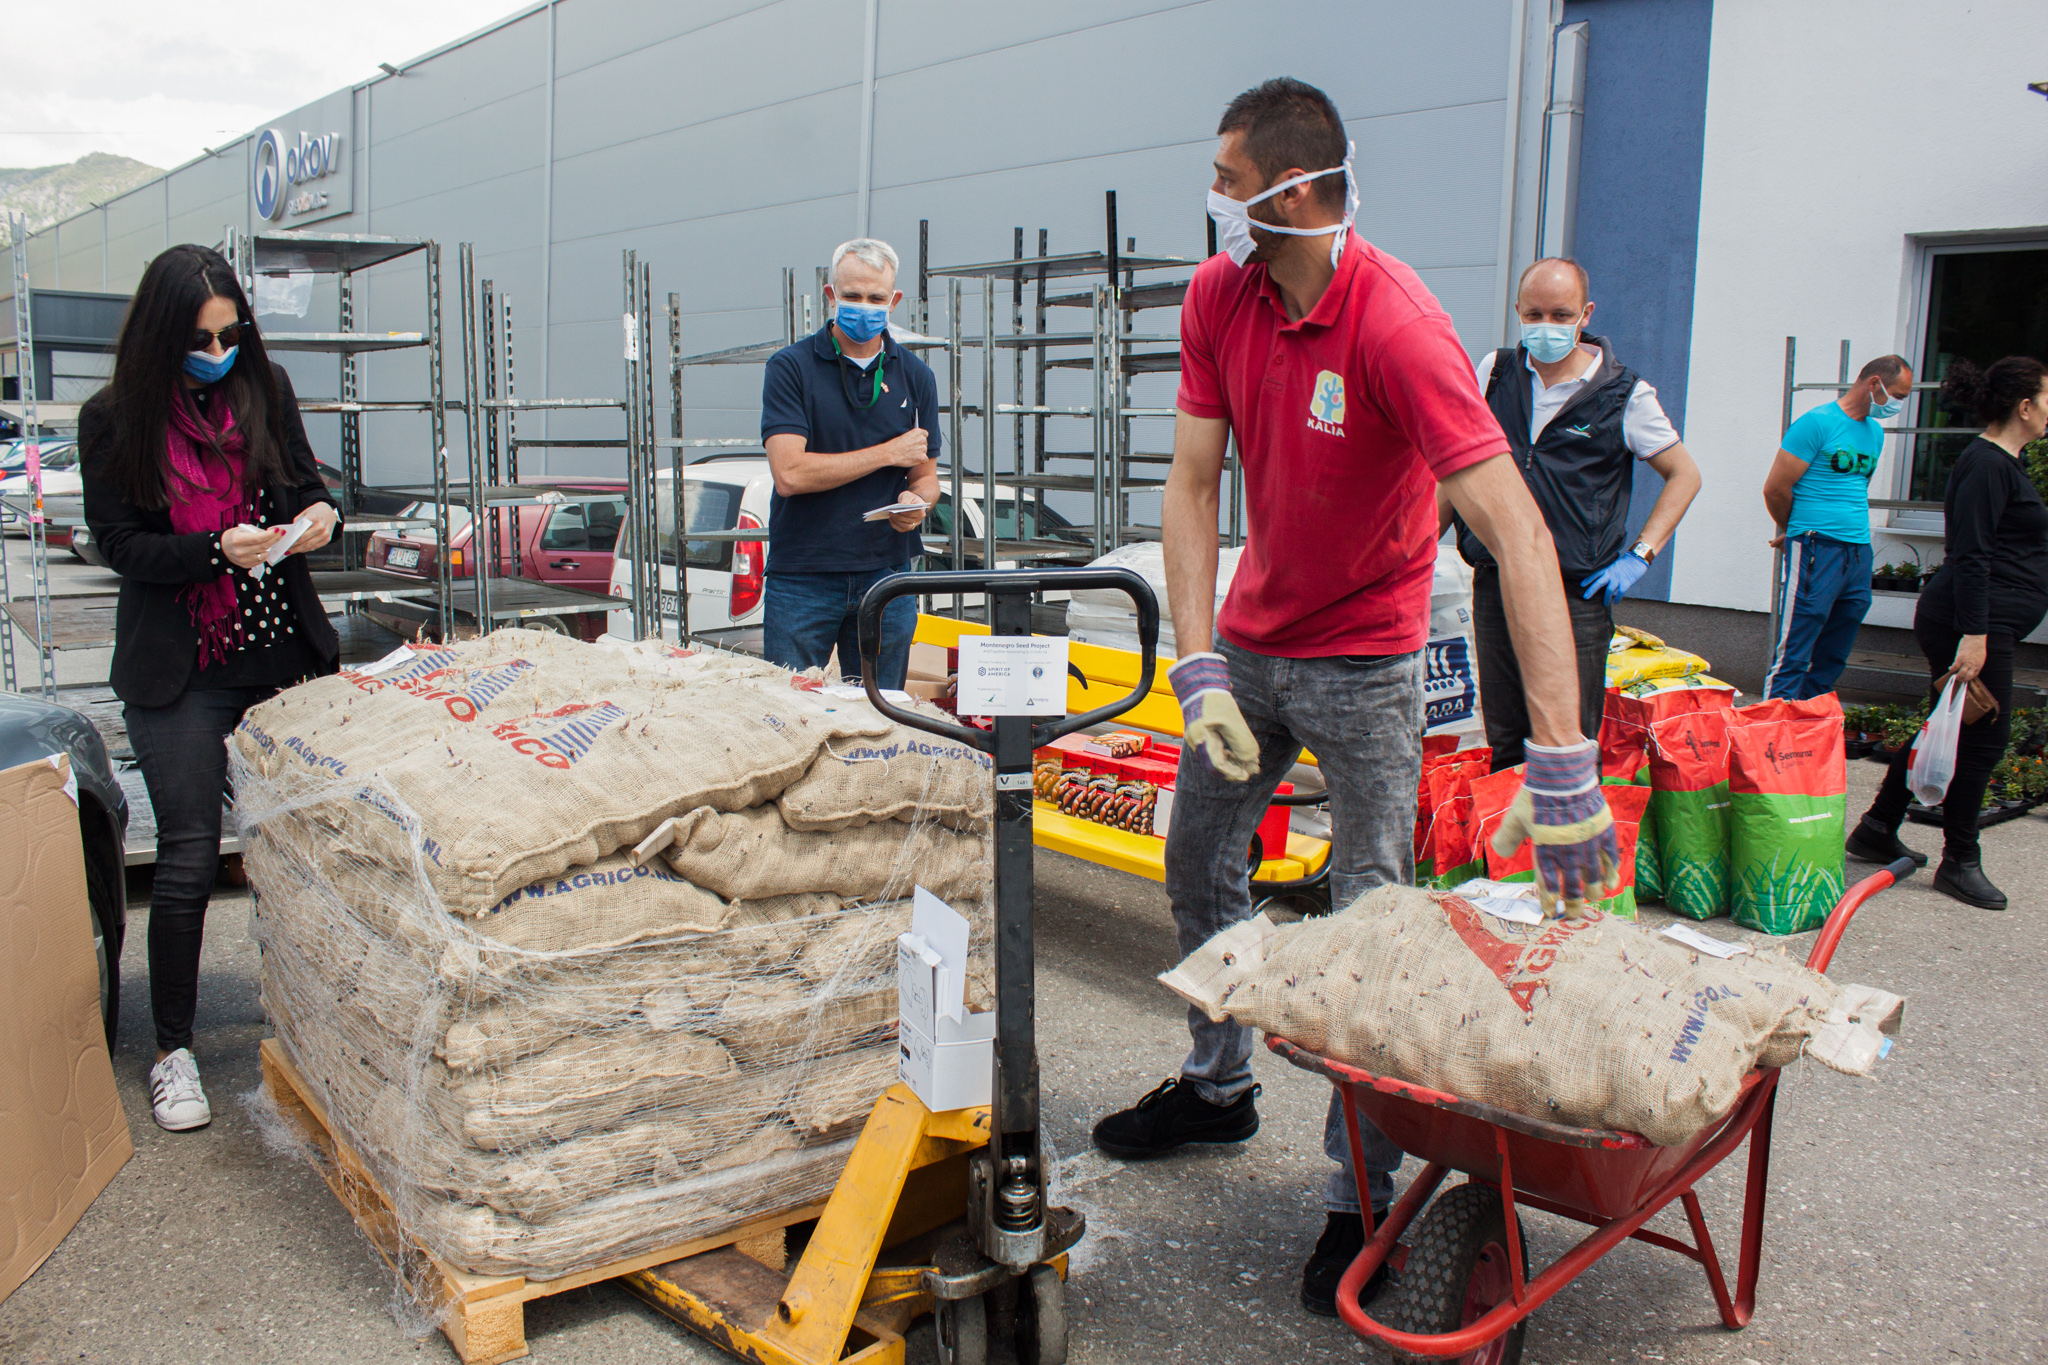 Lt. Col. Robert C. Perry (center, blue shirt) and Defense Attaché Office Coordinator Meri Perisić (left) receive seeds and potato slips being prepared for distribution in Berane, Montenegro. Photo courtesy of Jelena Krivčević